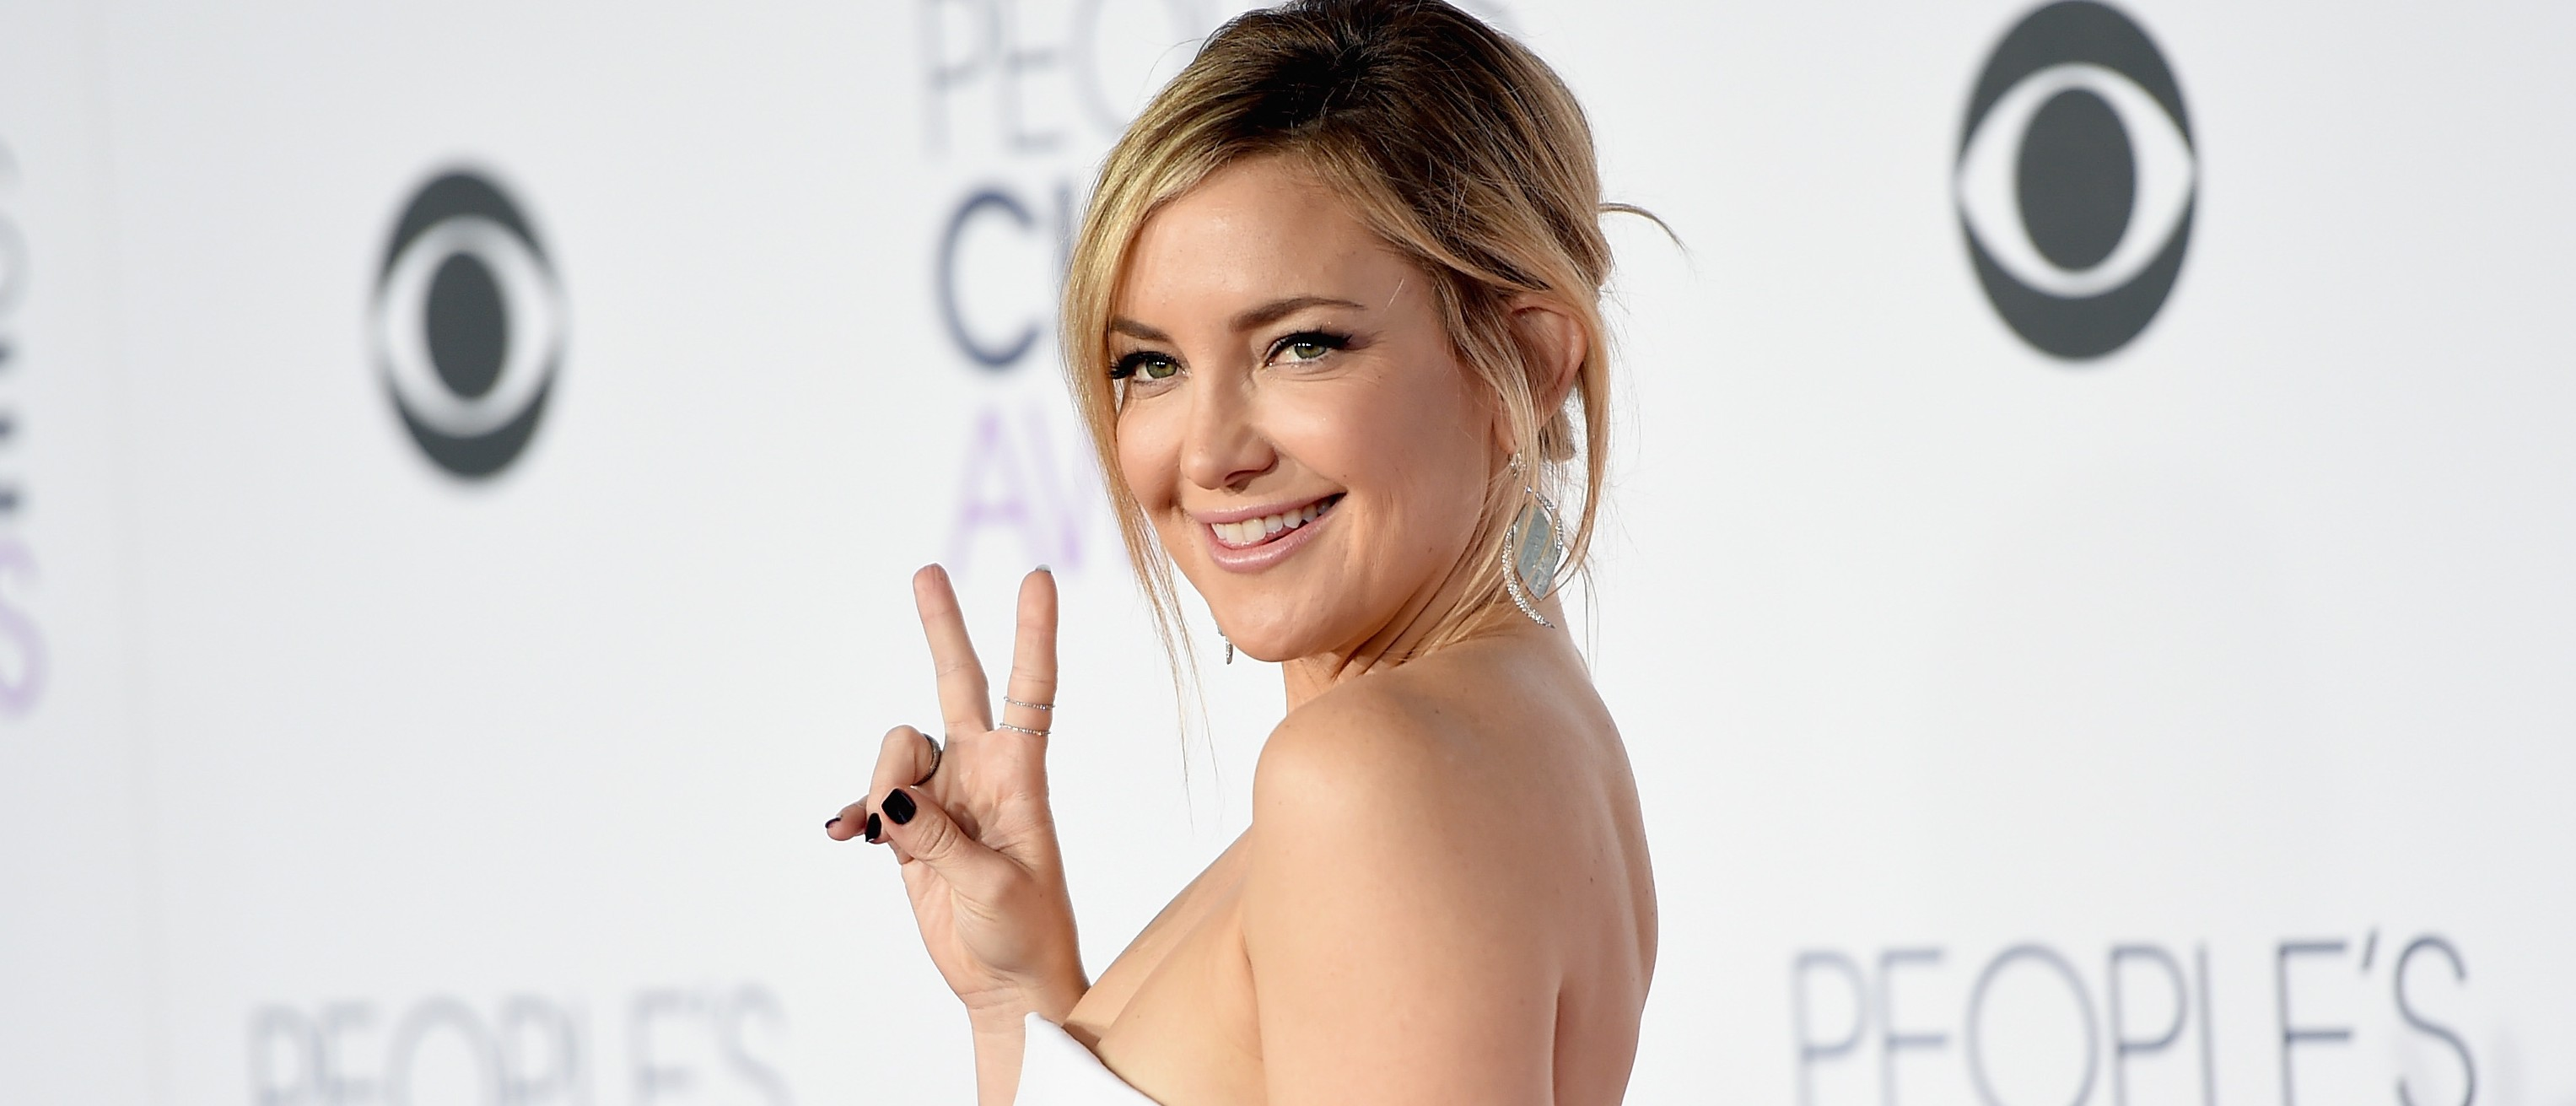 Kate Hudson at the People's Choice Awards. (Photo: Jason Merritt/Getty Images)